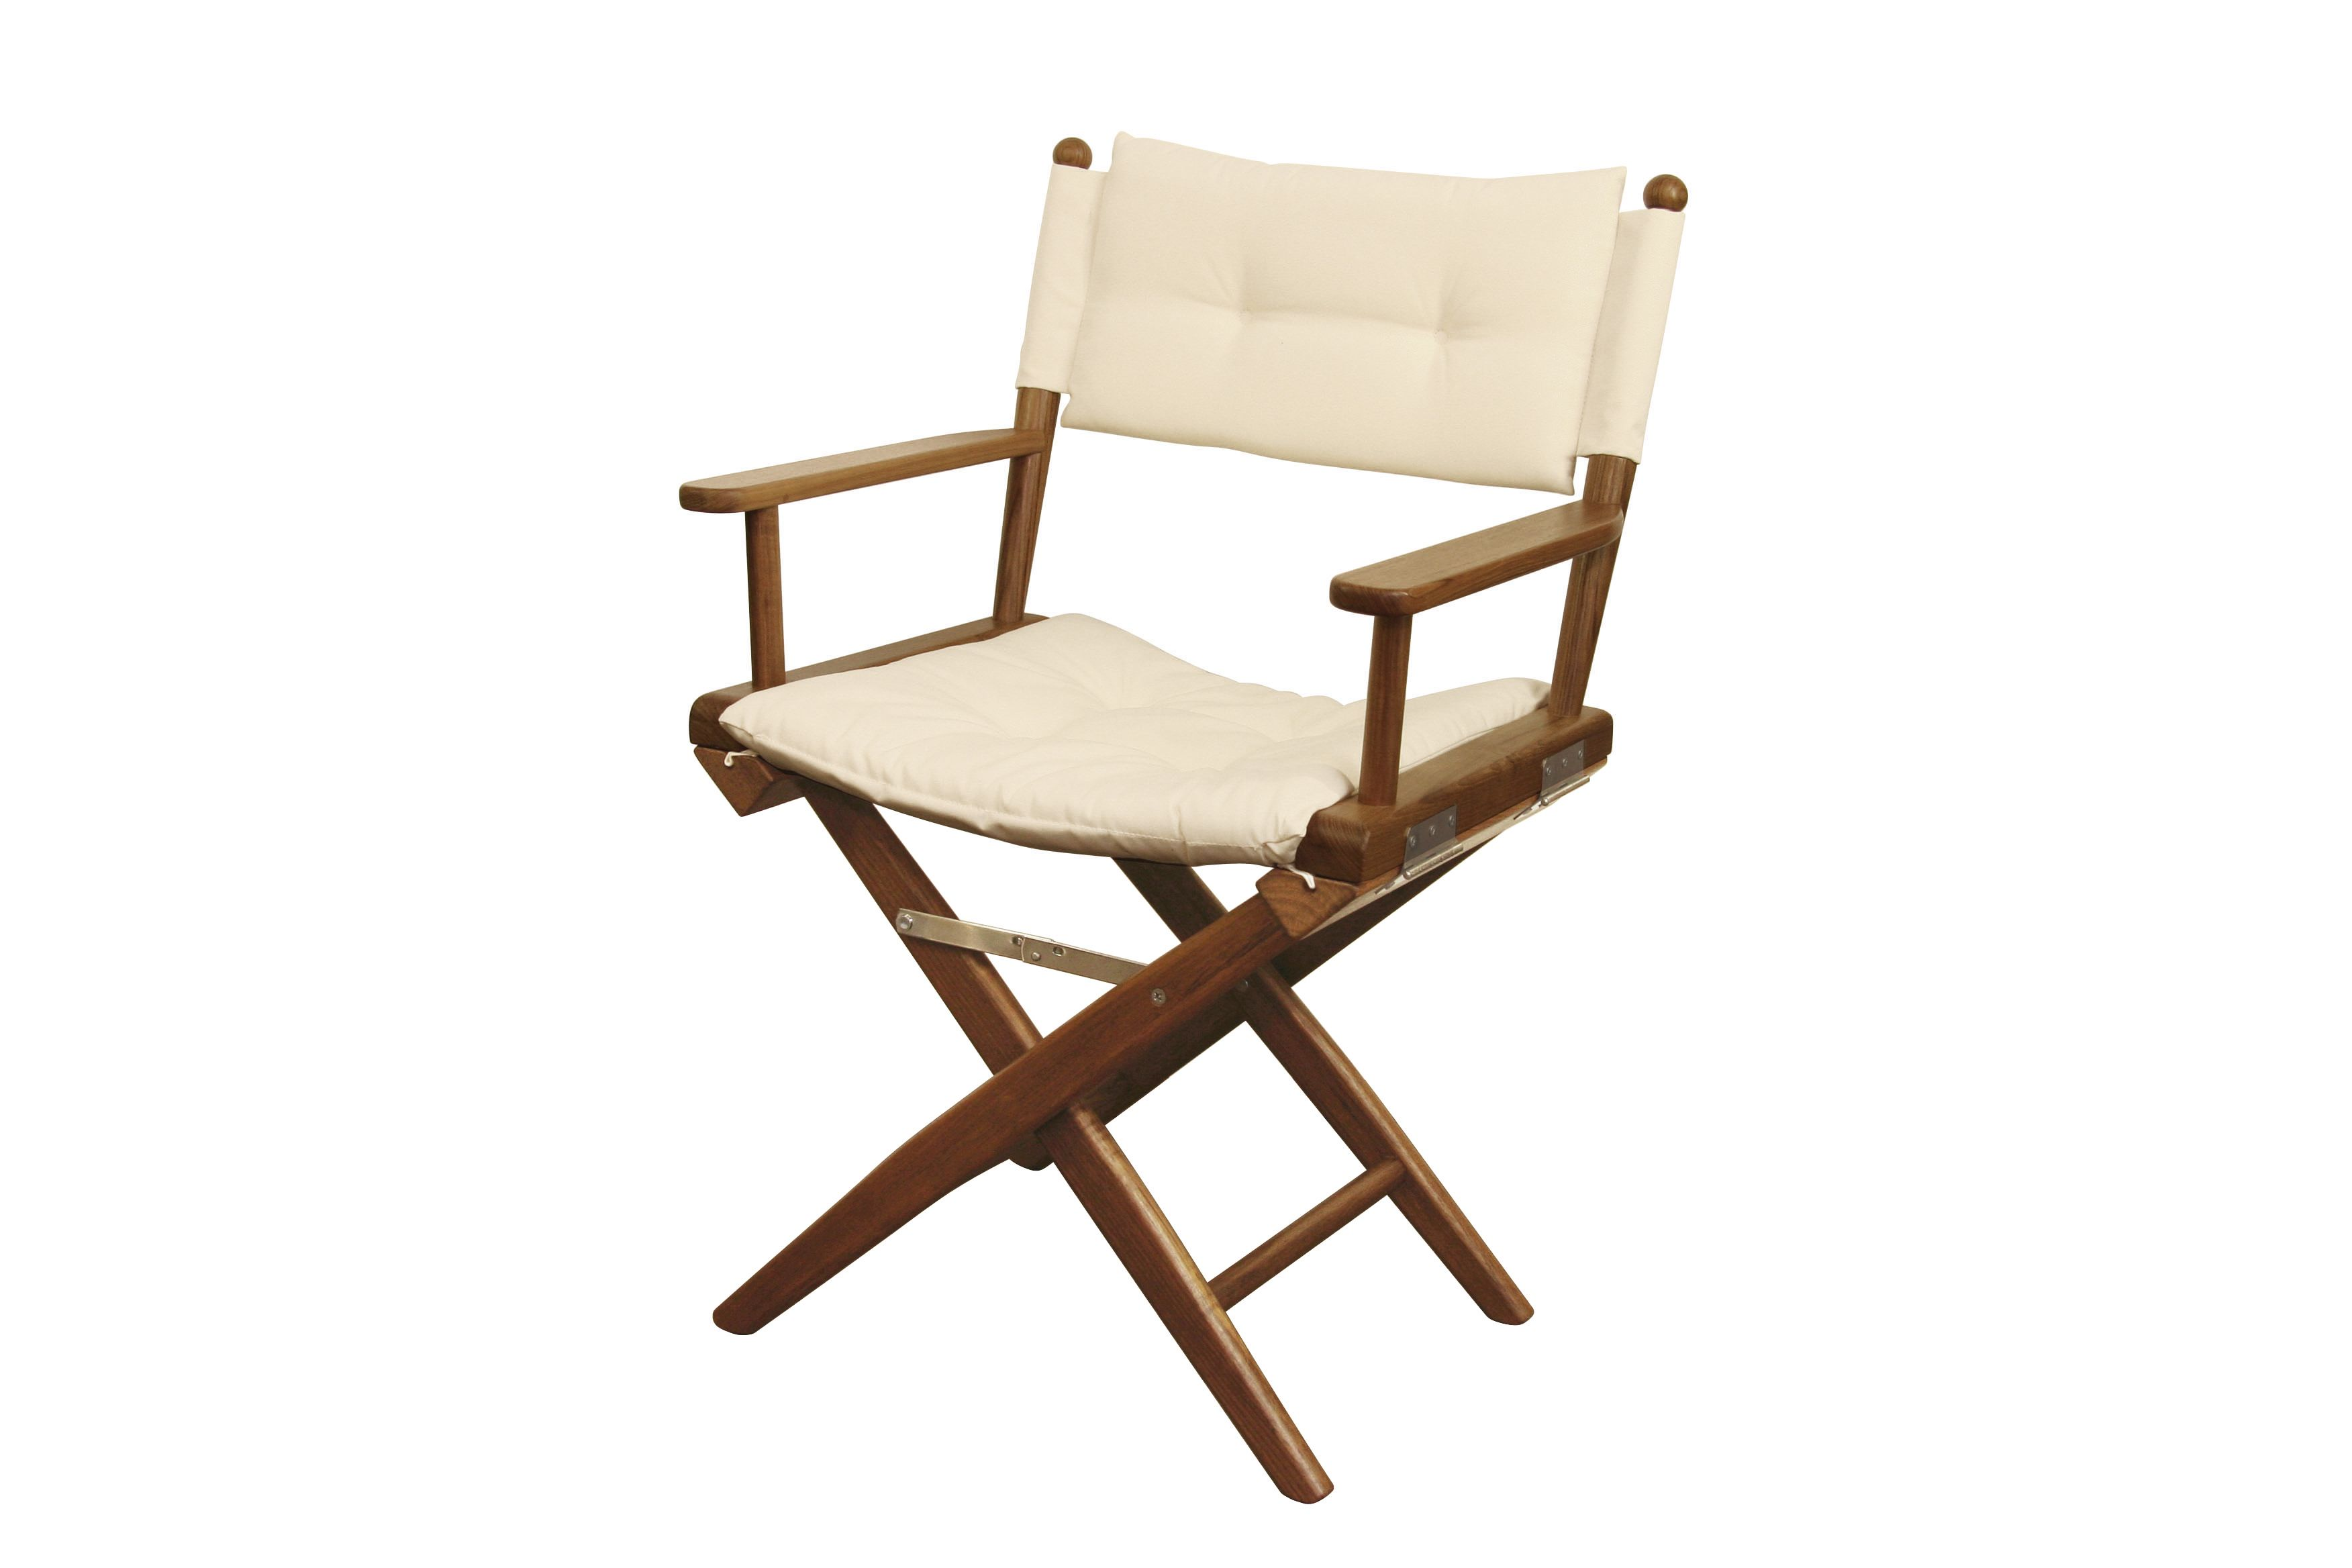 Teak Directors Chair Fitted With Batyline Canvas Seat With Luxurious Cushions Covered In Hard Wearing And Easy To Clean 100 Dralo Stoelen Voor Het Huis Huis